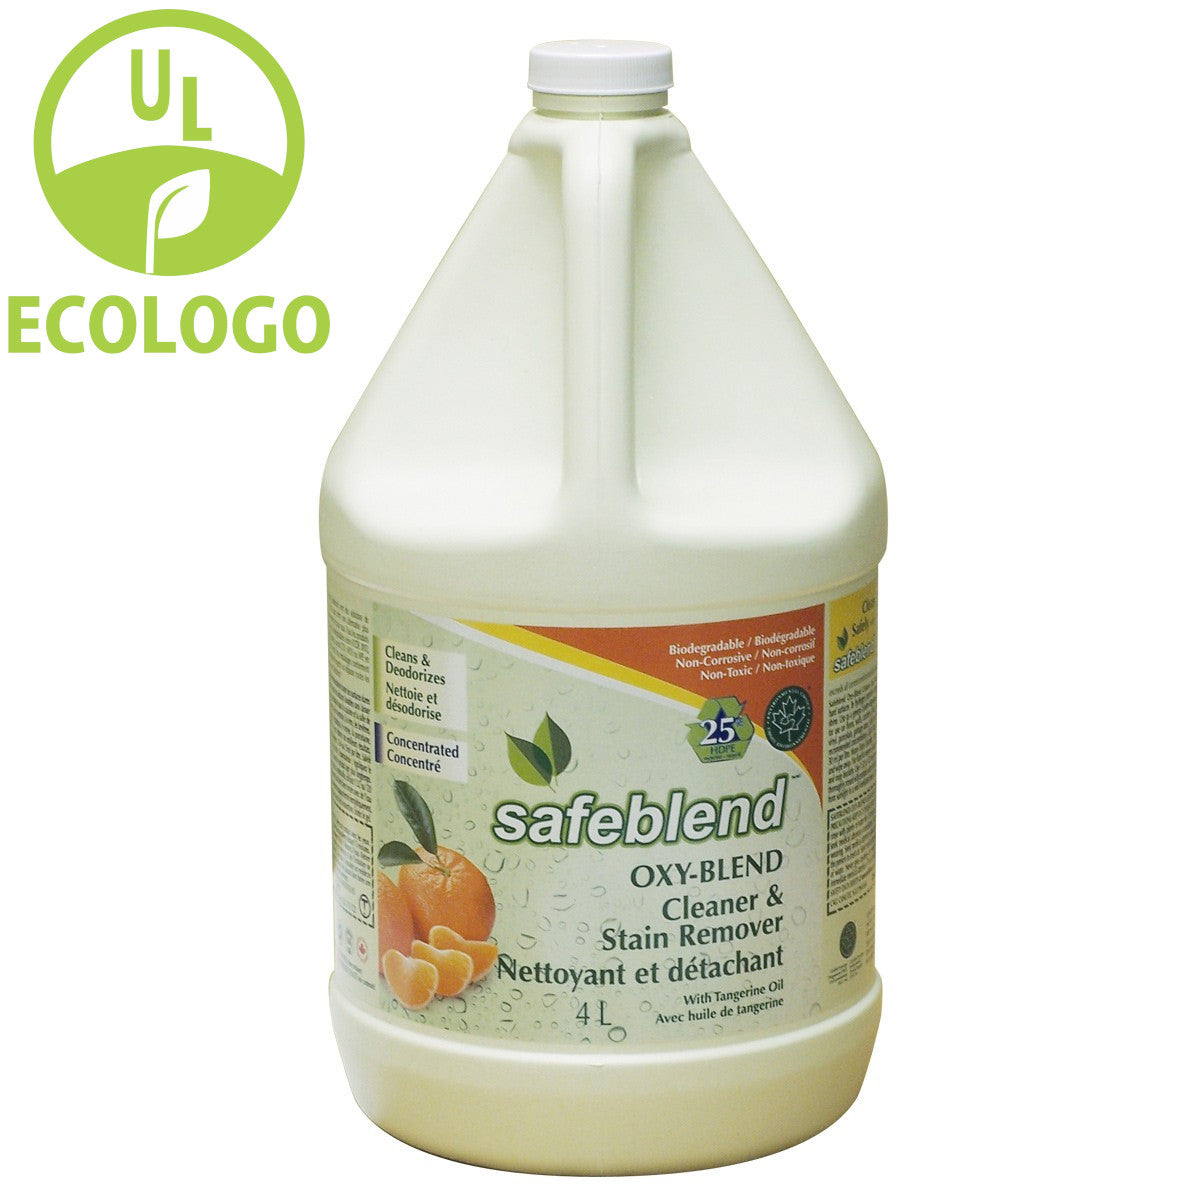 Safeblend Oxy EcoLogo Cleaner and Stain Remover (Tangerine Oil) - 4L - Super Vacs